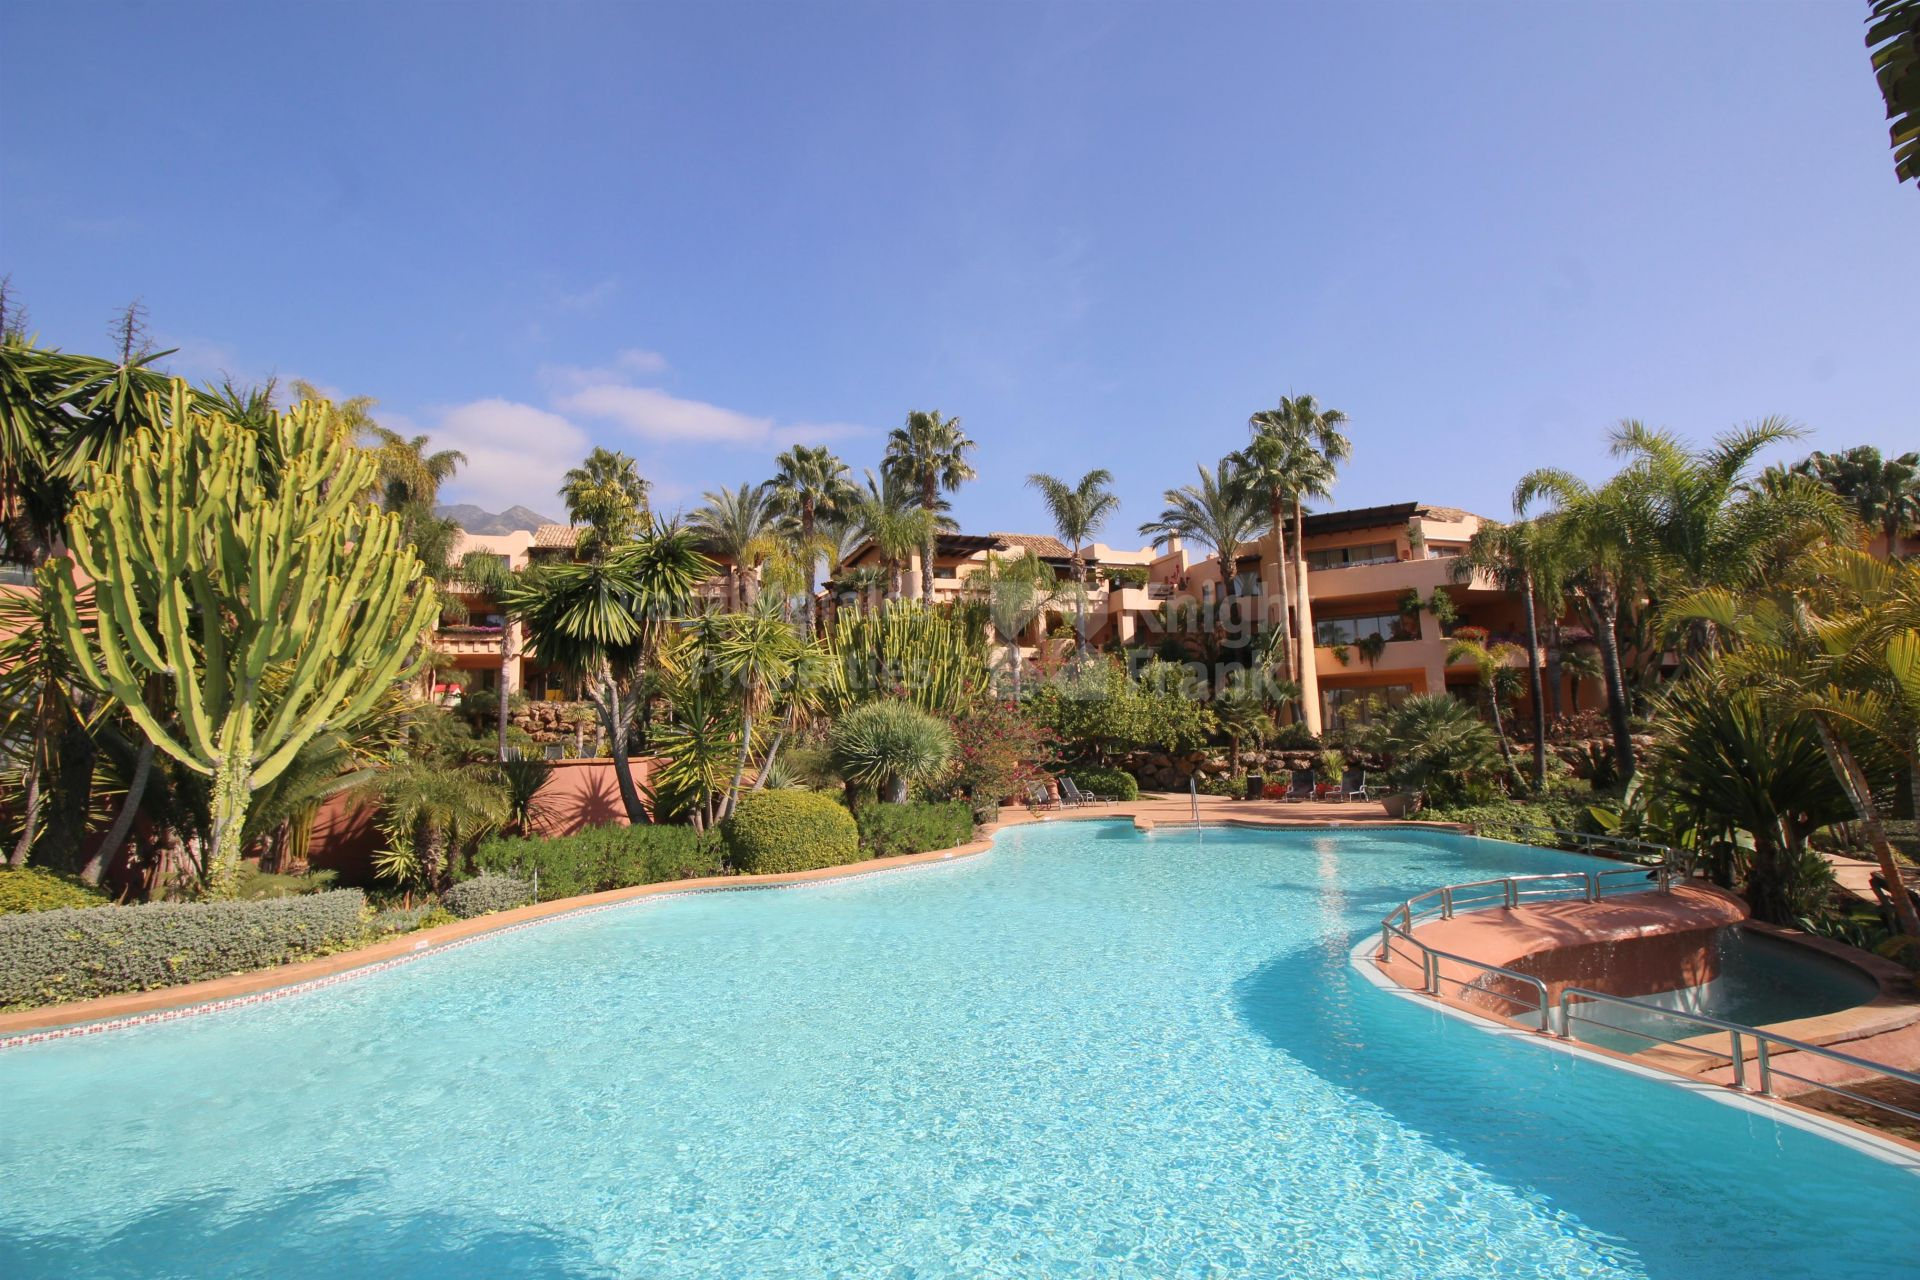 Apartments for sale in mansion club marbella golden mile - Iproperty marbella ...